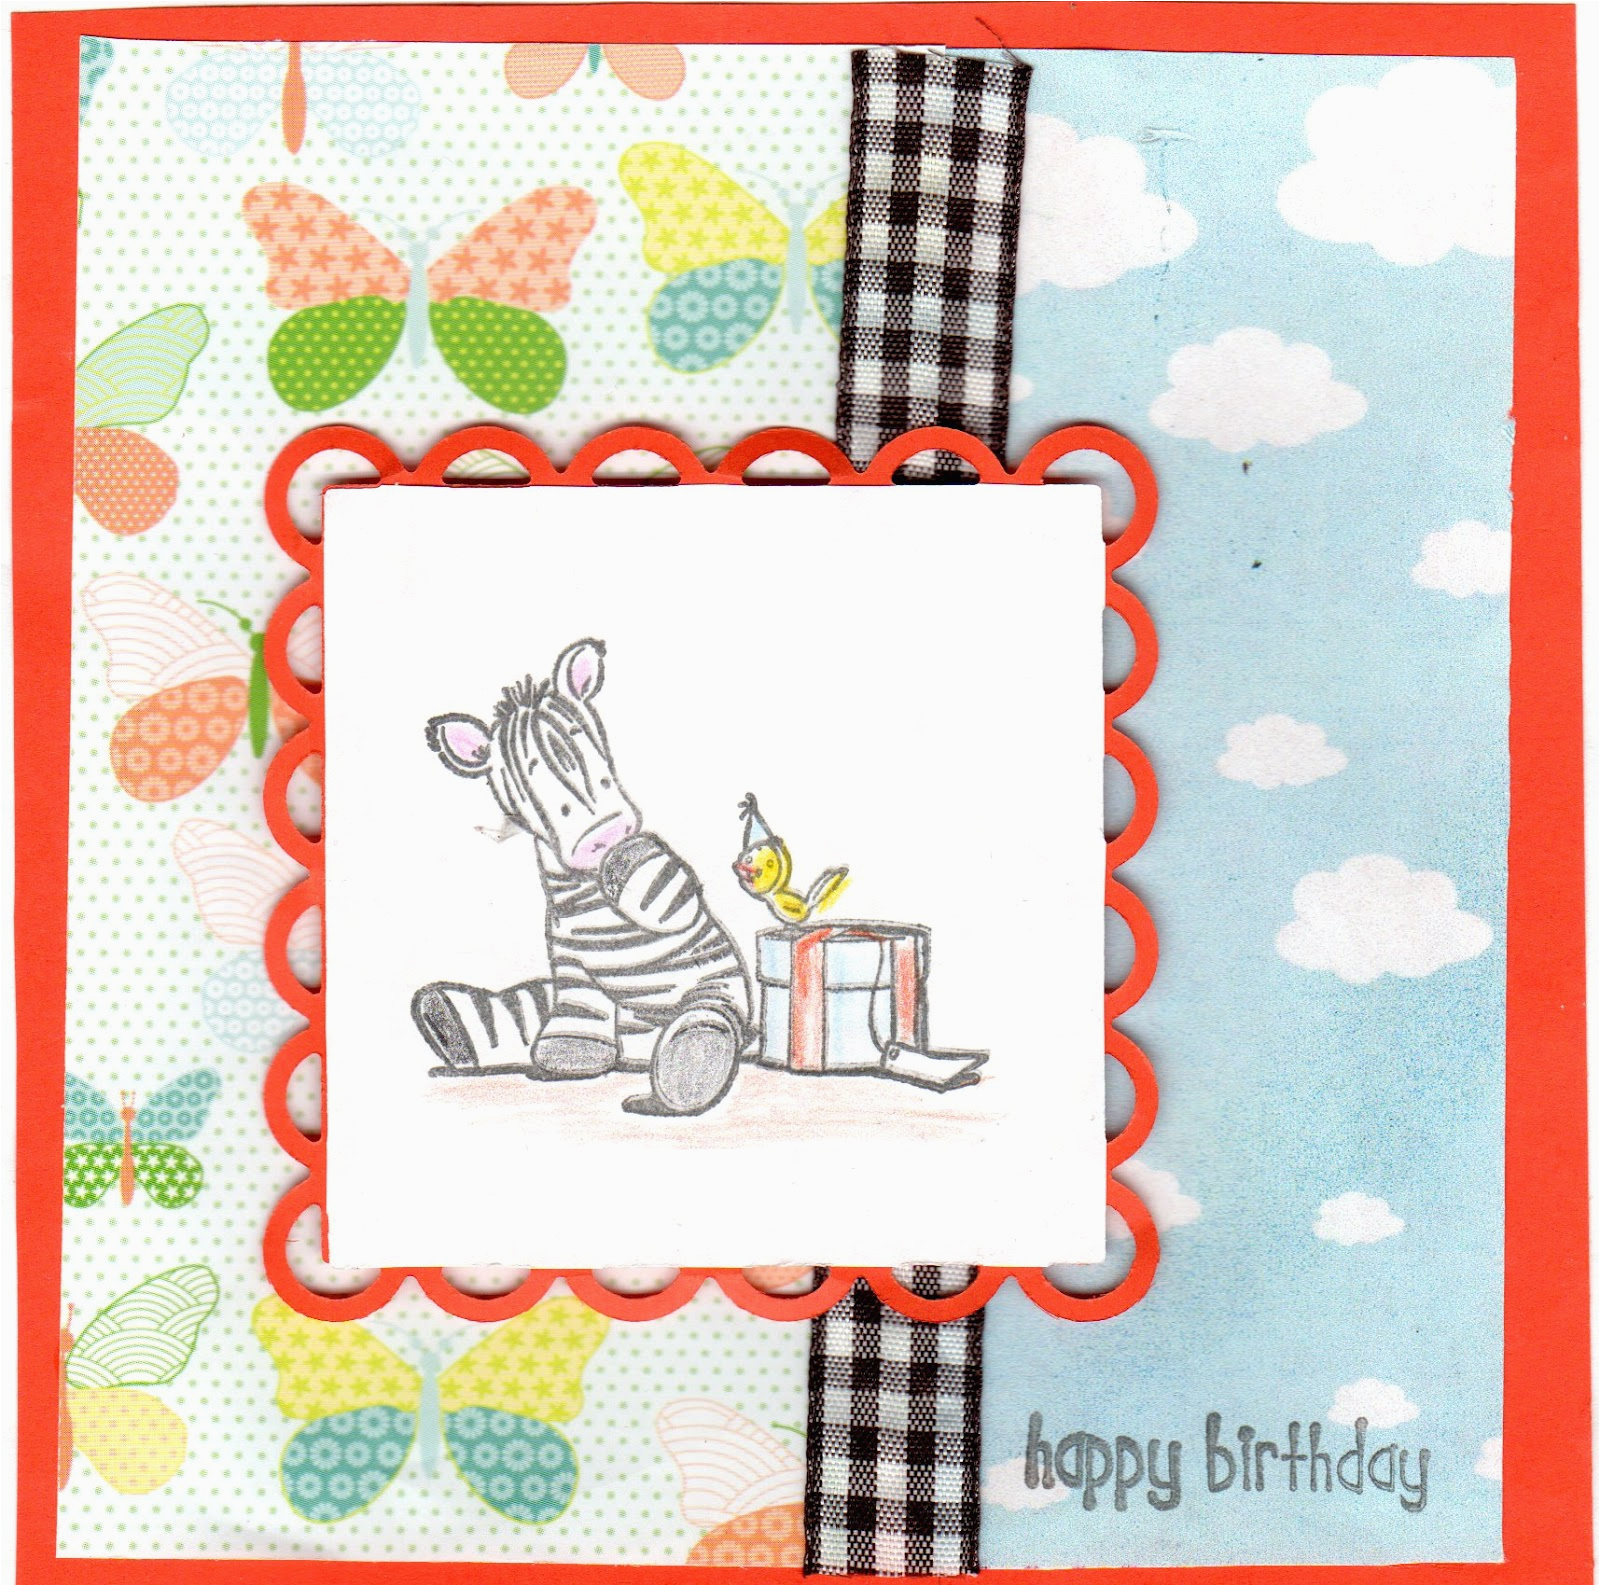 birthday card for 1 year old